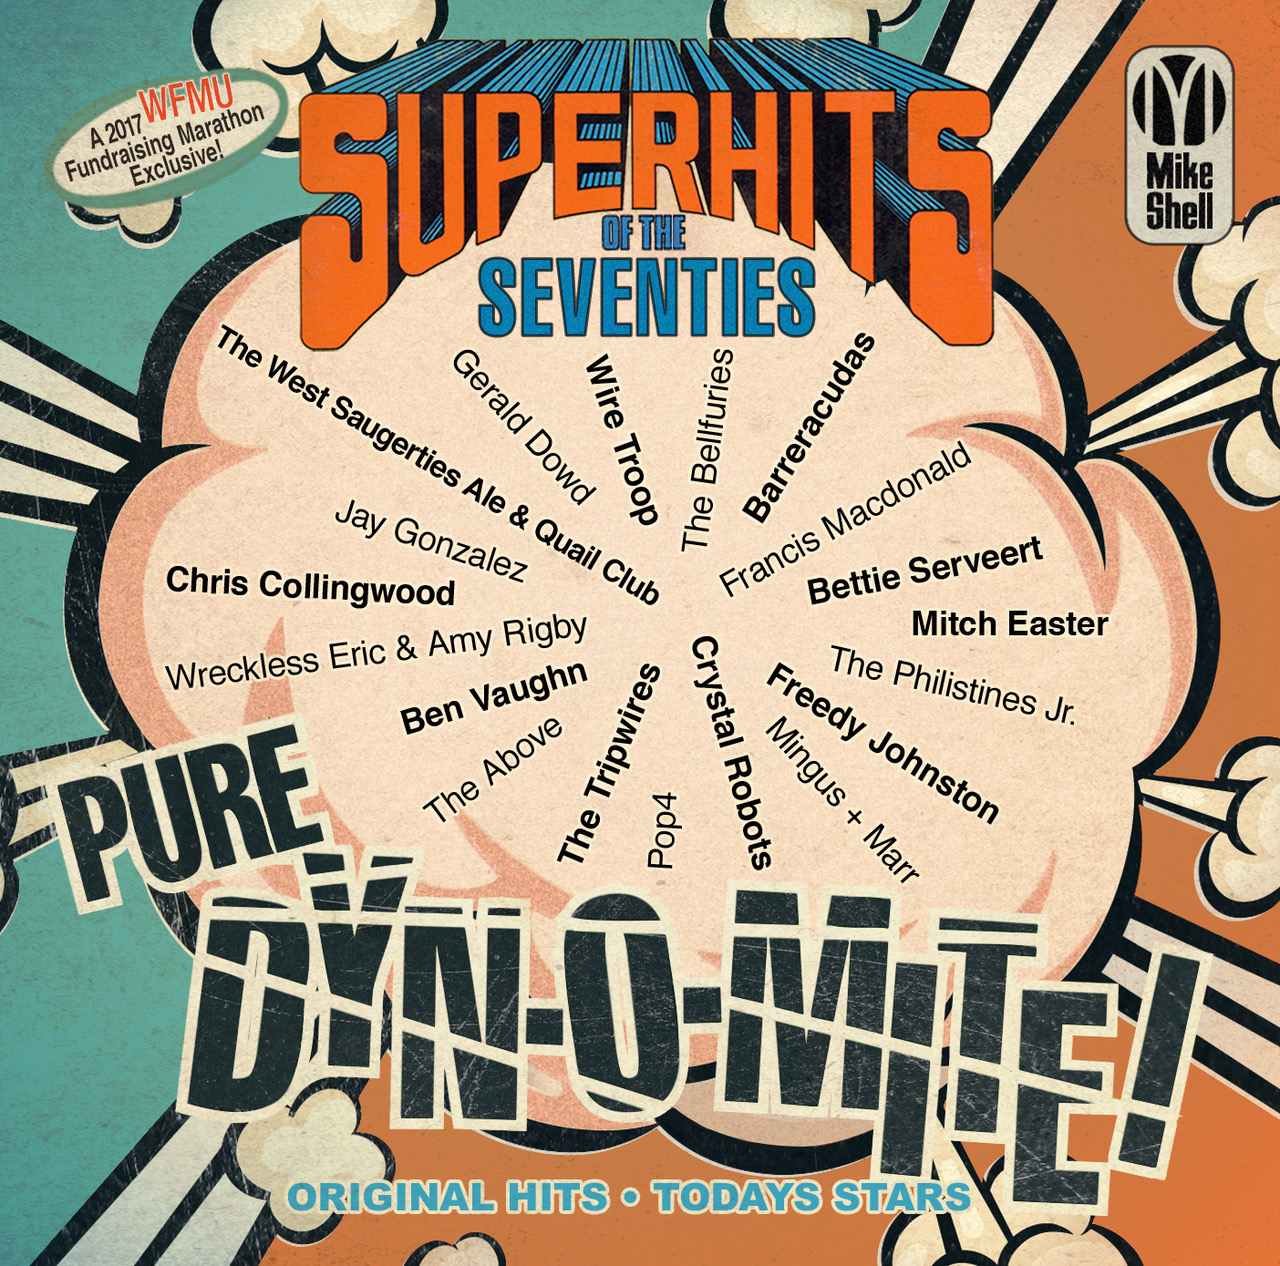 WFMU's Super Hits of the Seventies: Pure Dyn-O-Mite!